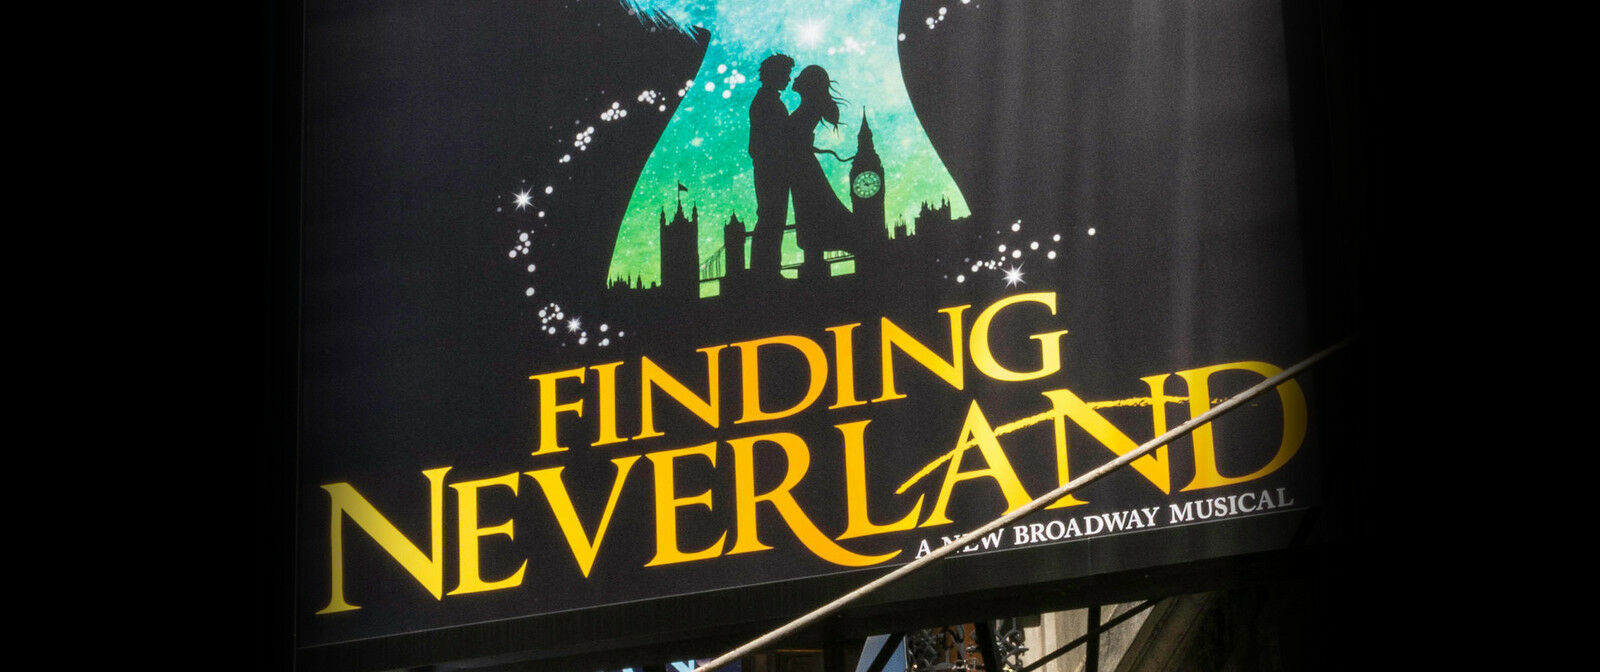 Finding Neverland Fort Lauderdale